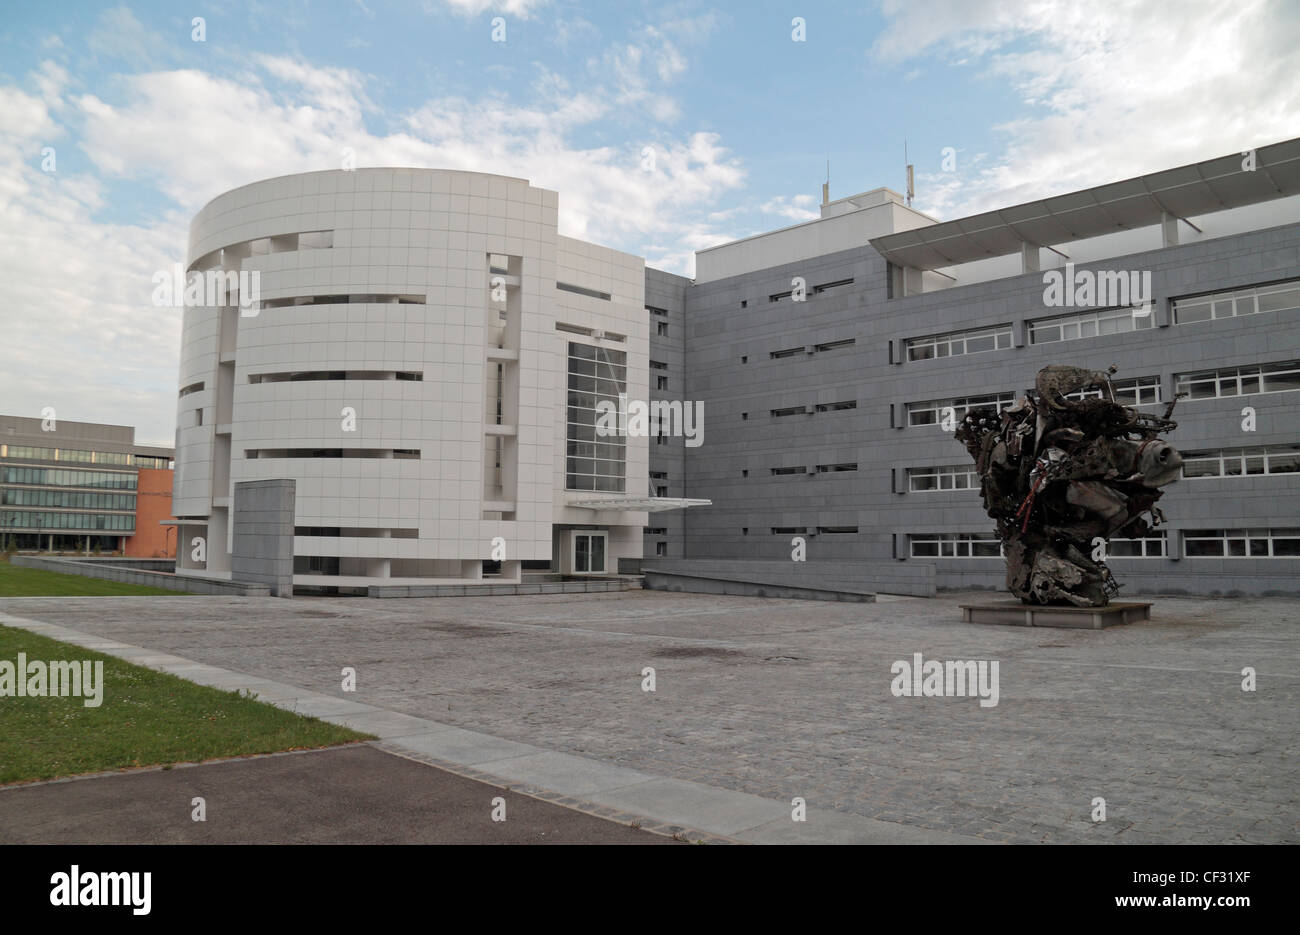 The UniCredit Luxembourg offices in Kirchberg, Luxembourg city, Luxembourg. - Stock Image